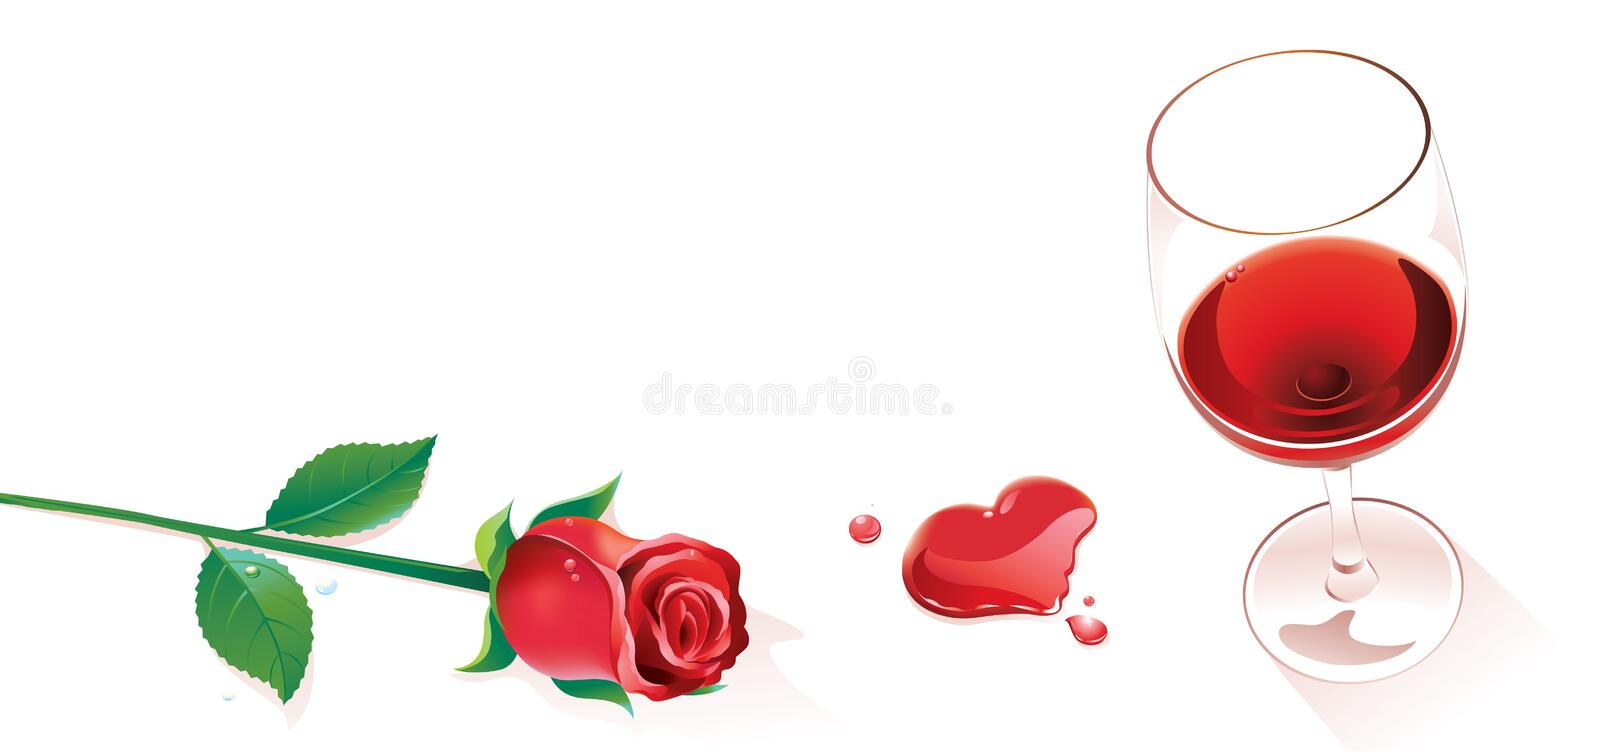 Wine and rose. Wine goblet and red rose beside royalty free illustration